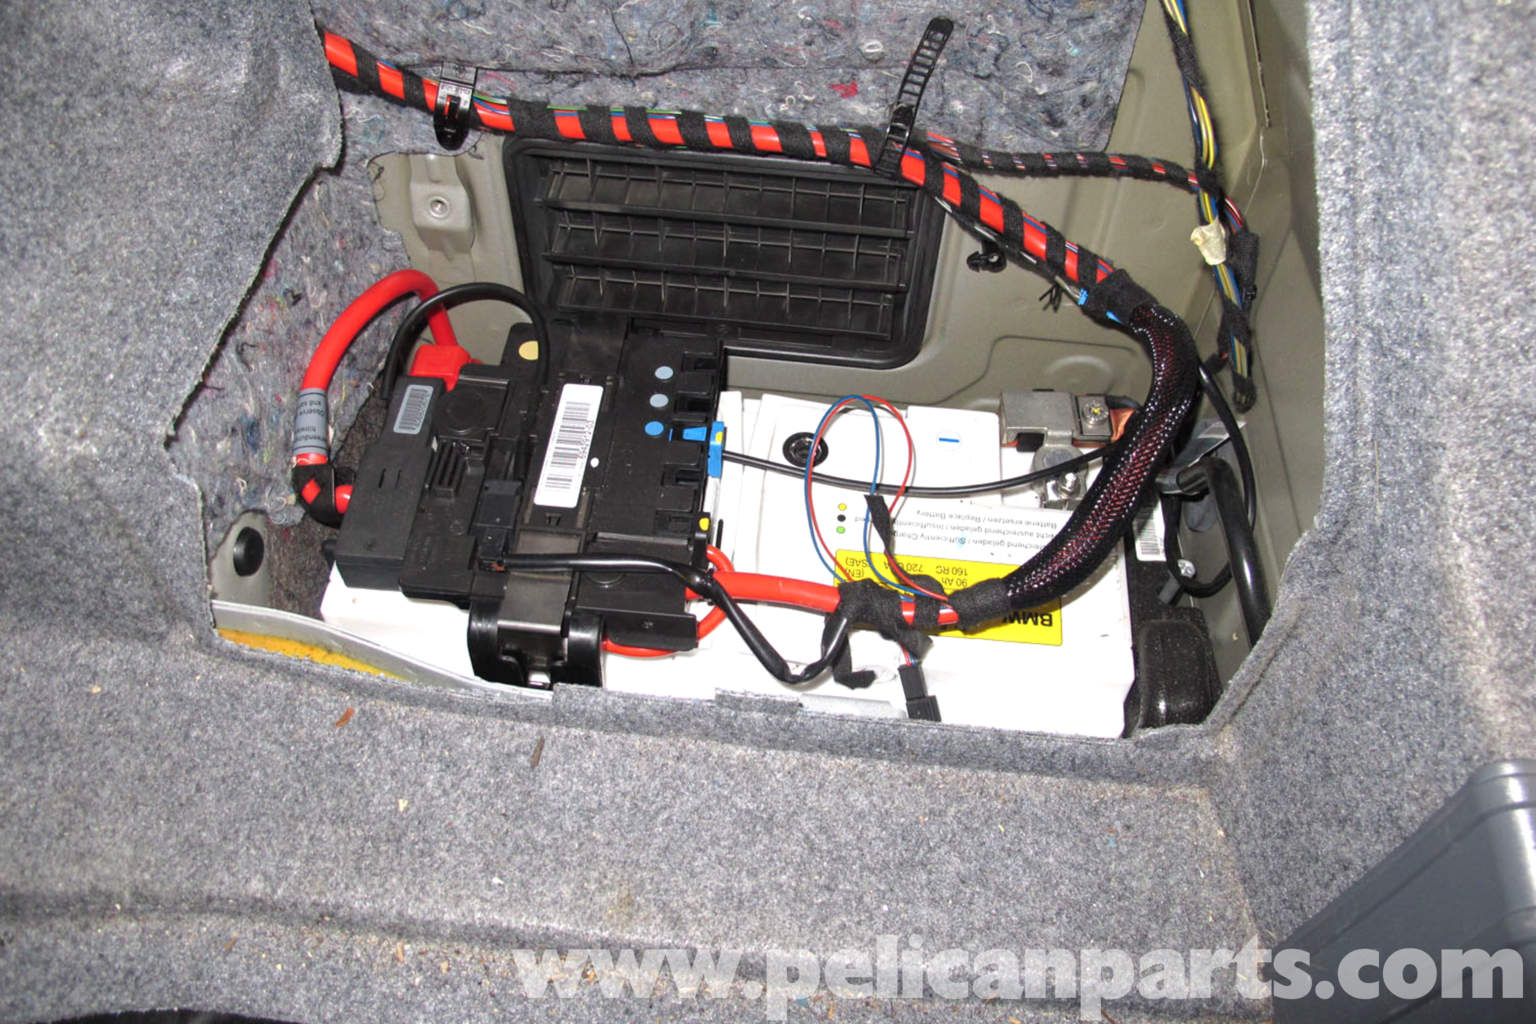 pic01 e90 m3 fuse box e39 fuse box wiring diagram ~ odicis e90 m3 fuse box location at gsmx.co